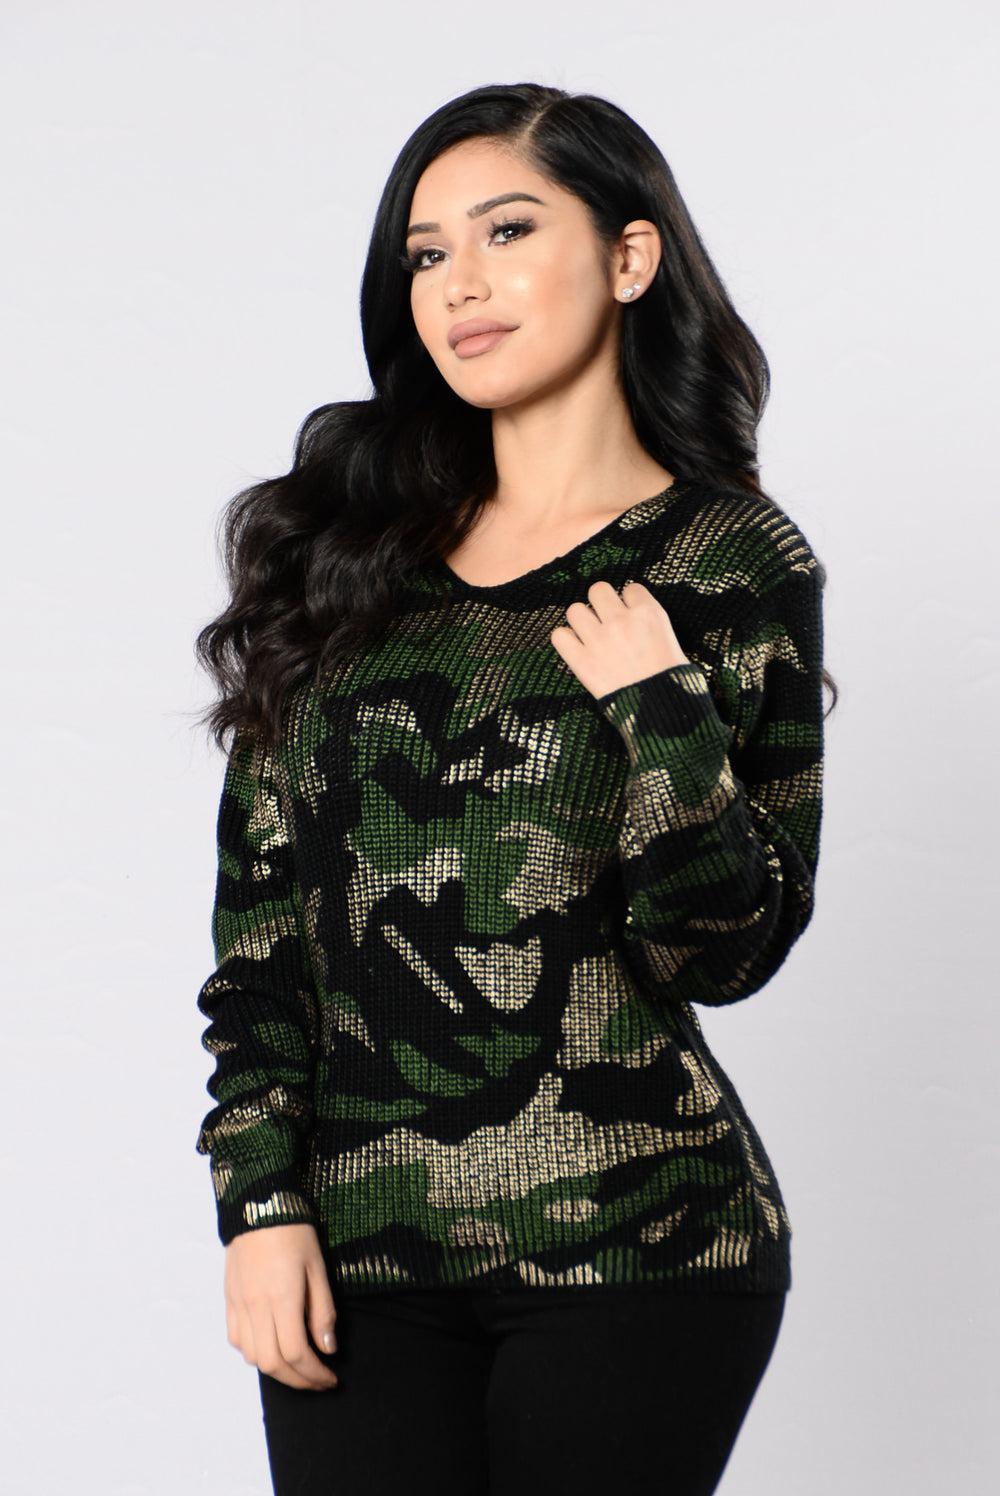 Metal Militia Sweater - Camo